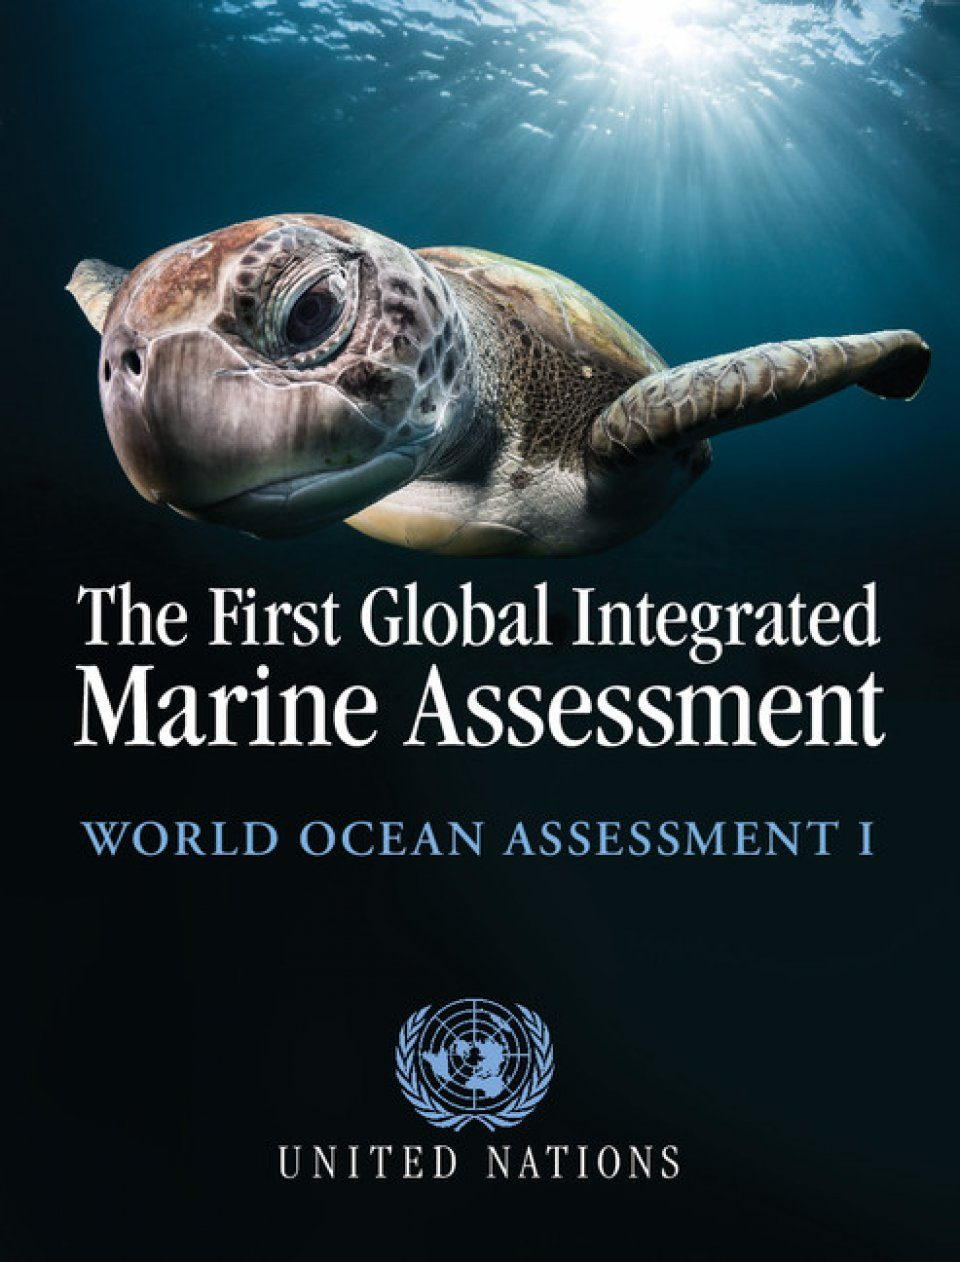 World Ocean Assessment I